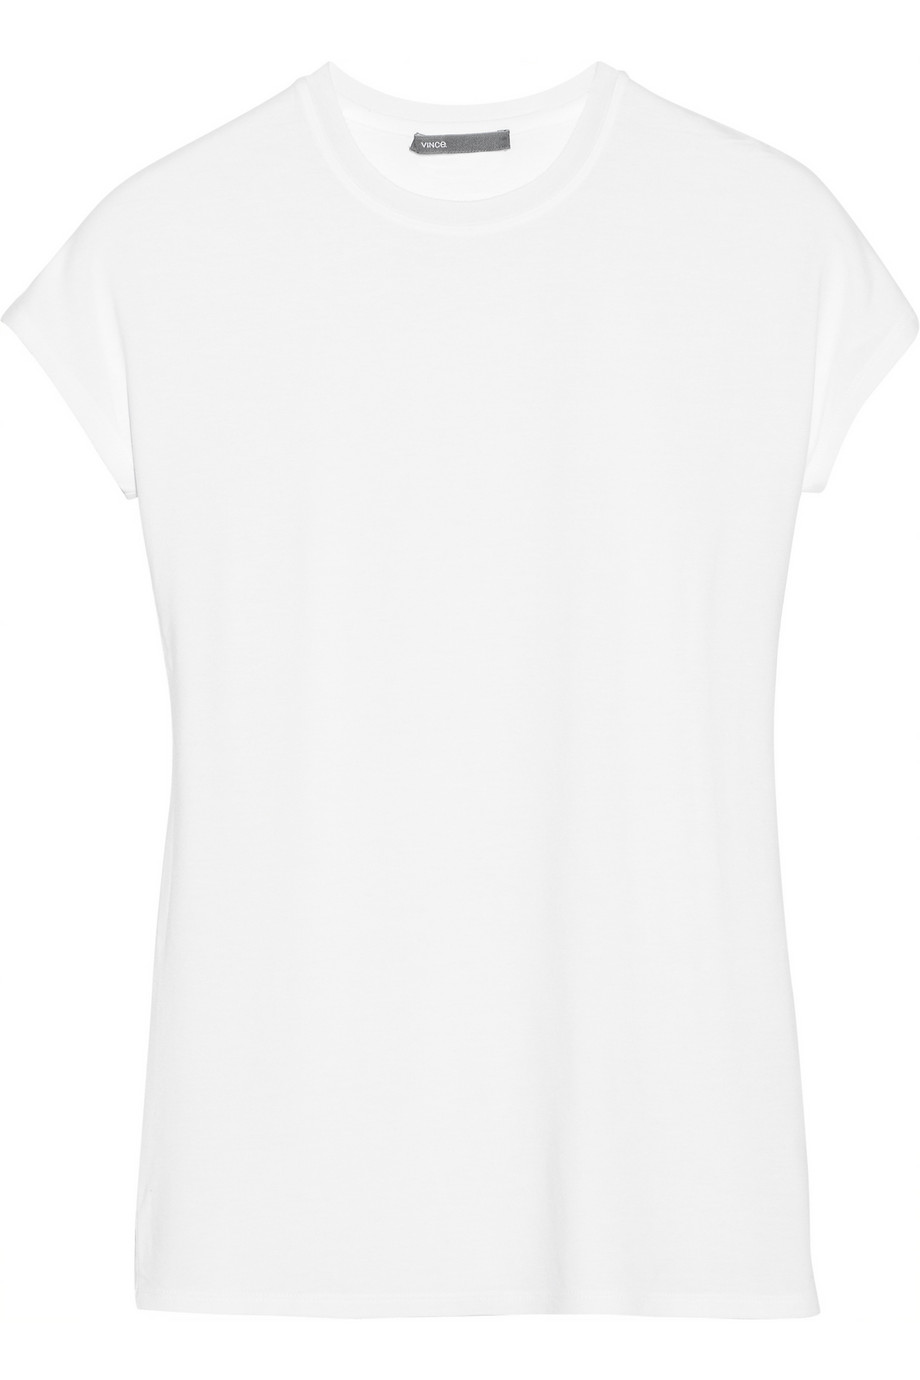 Micro Modal-blend jersey T-shirt | Vince | 40% off | THE OUTNET